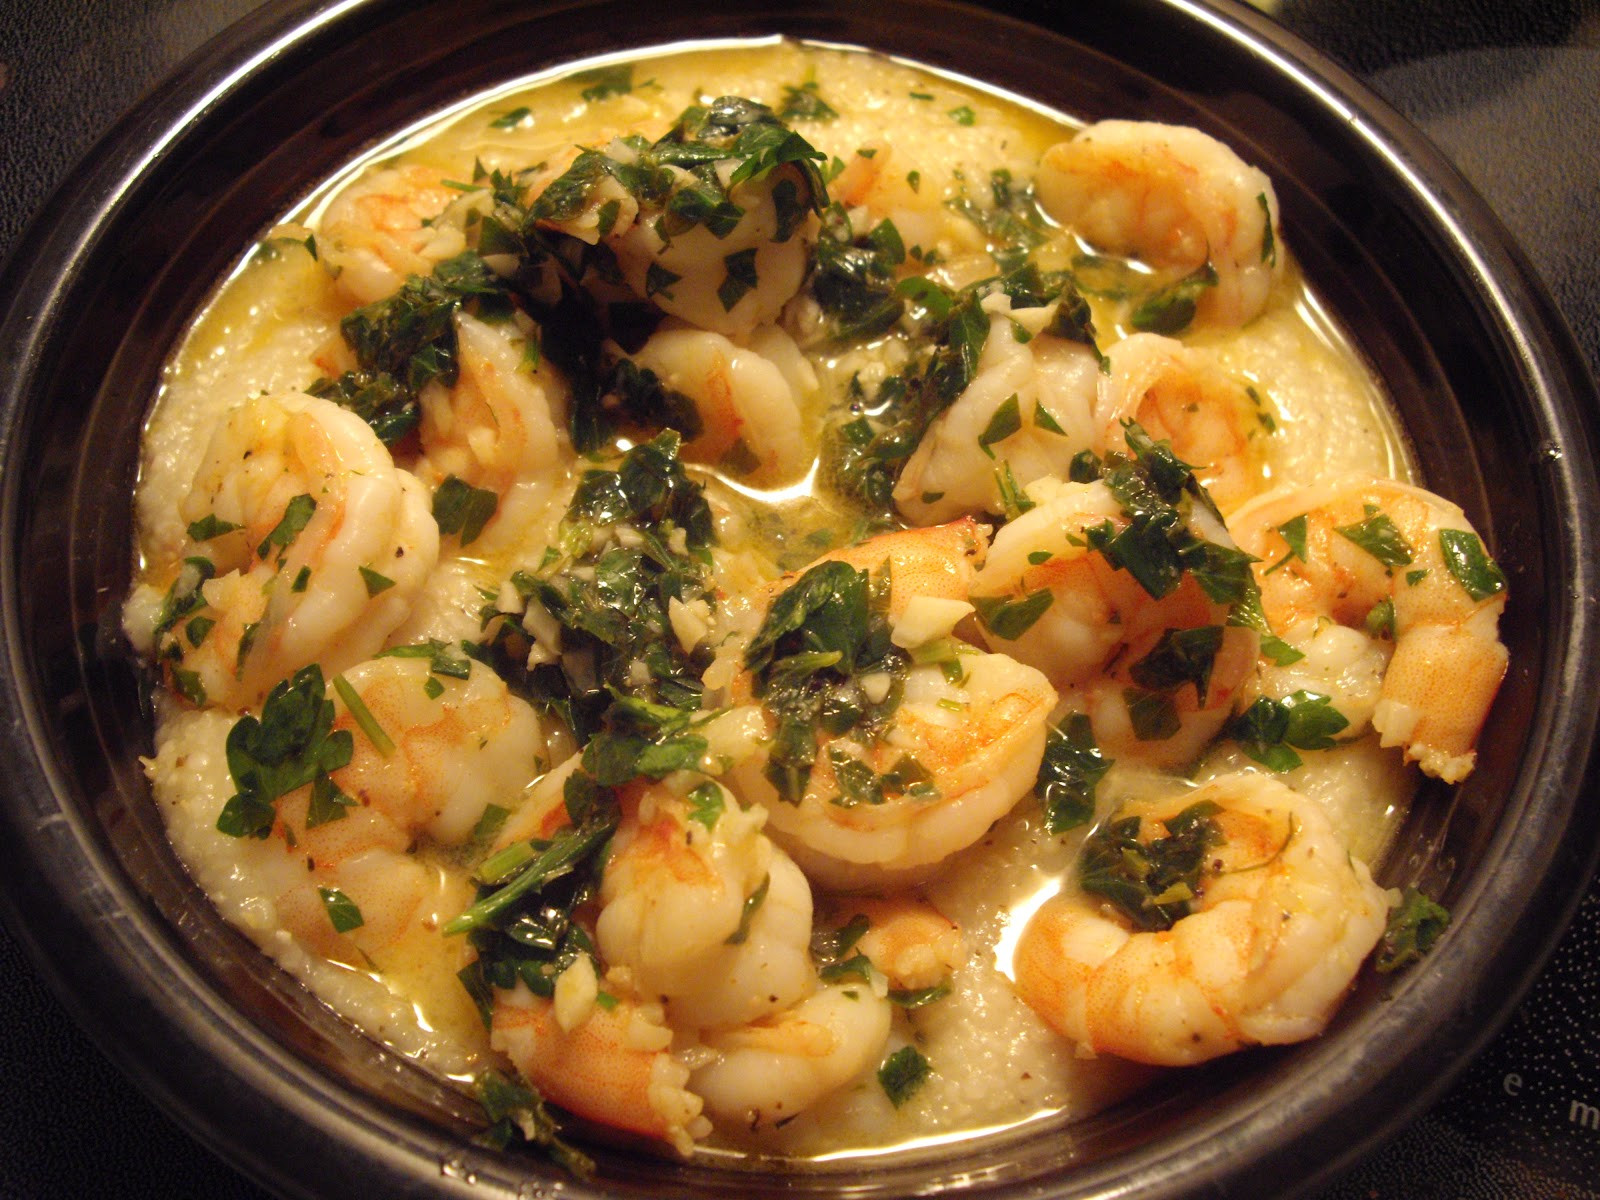 Healthy Shrimp And Grits Recipe  Lemon Garlic Shrimp and Grits